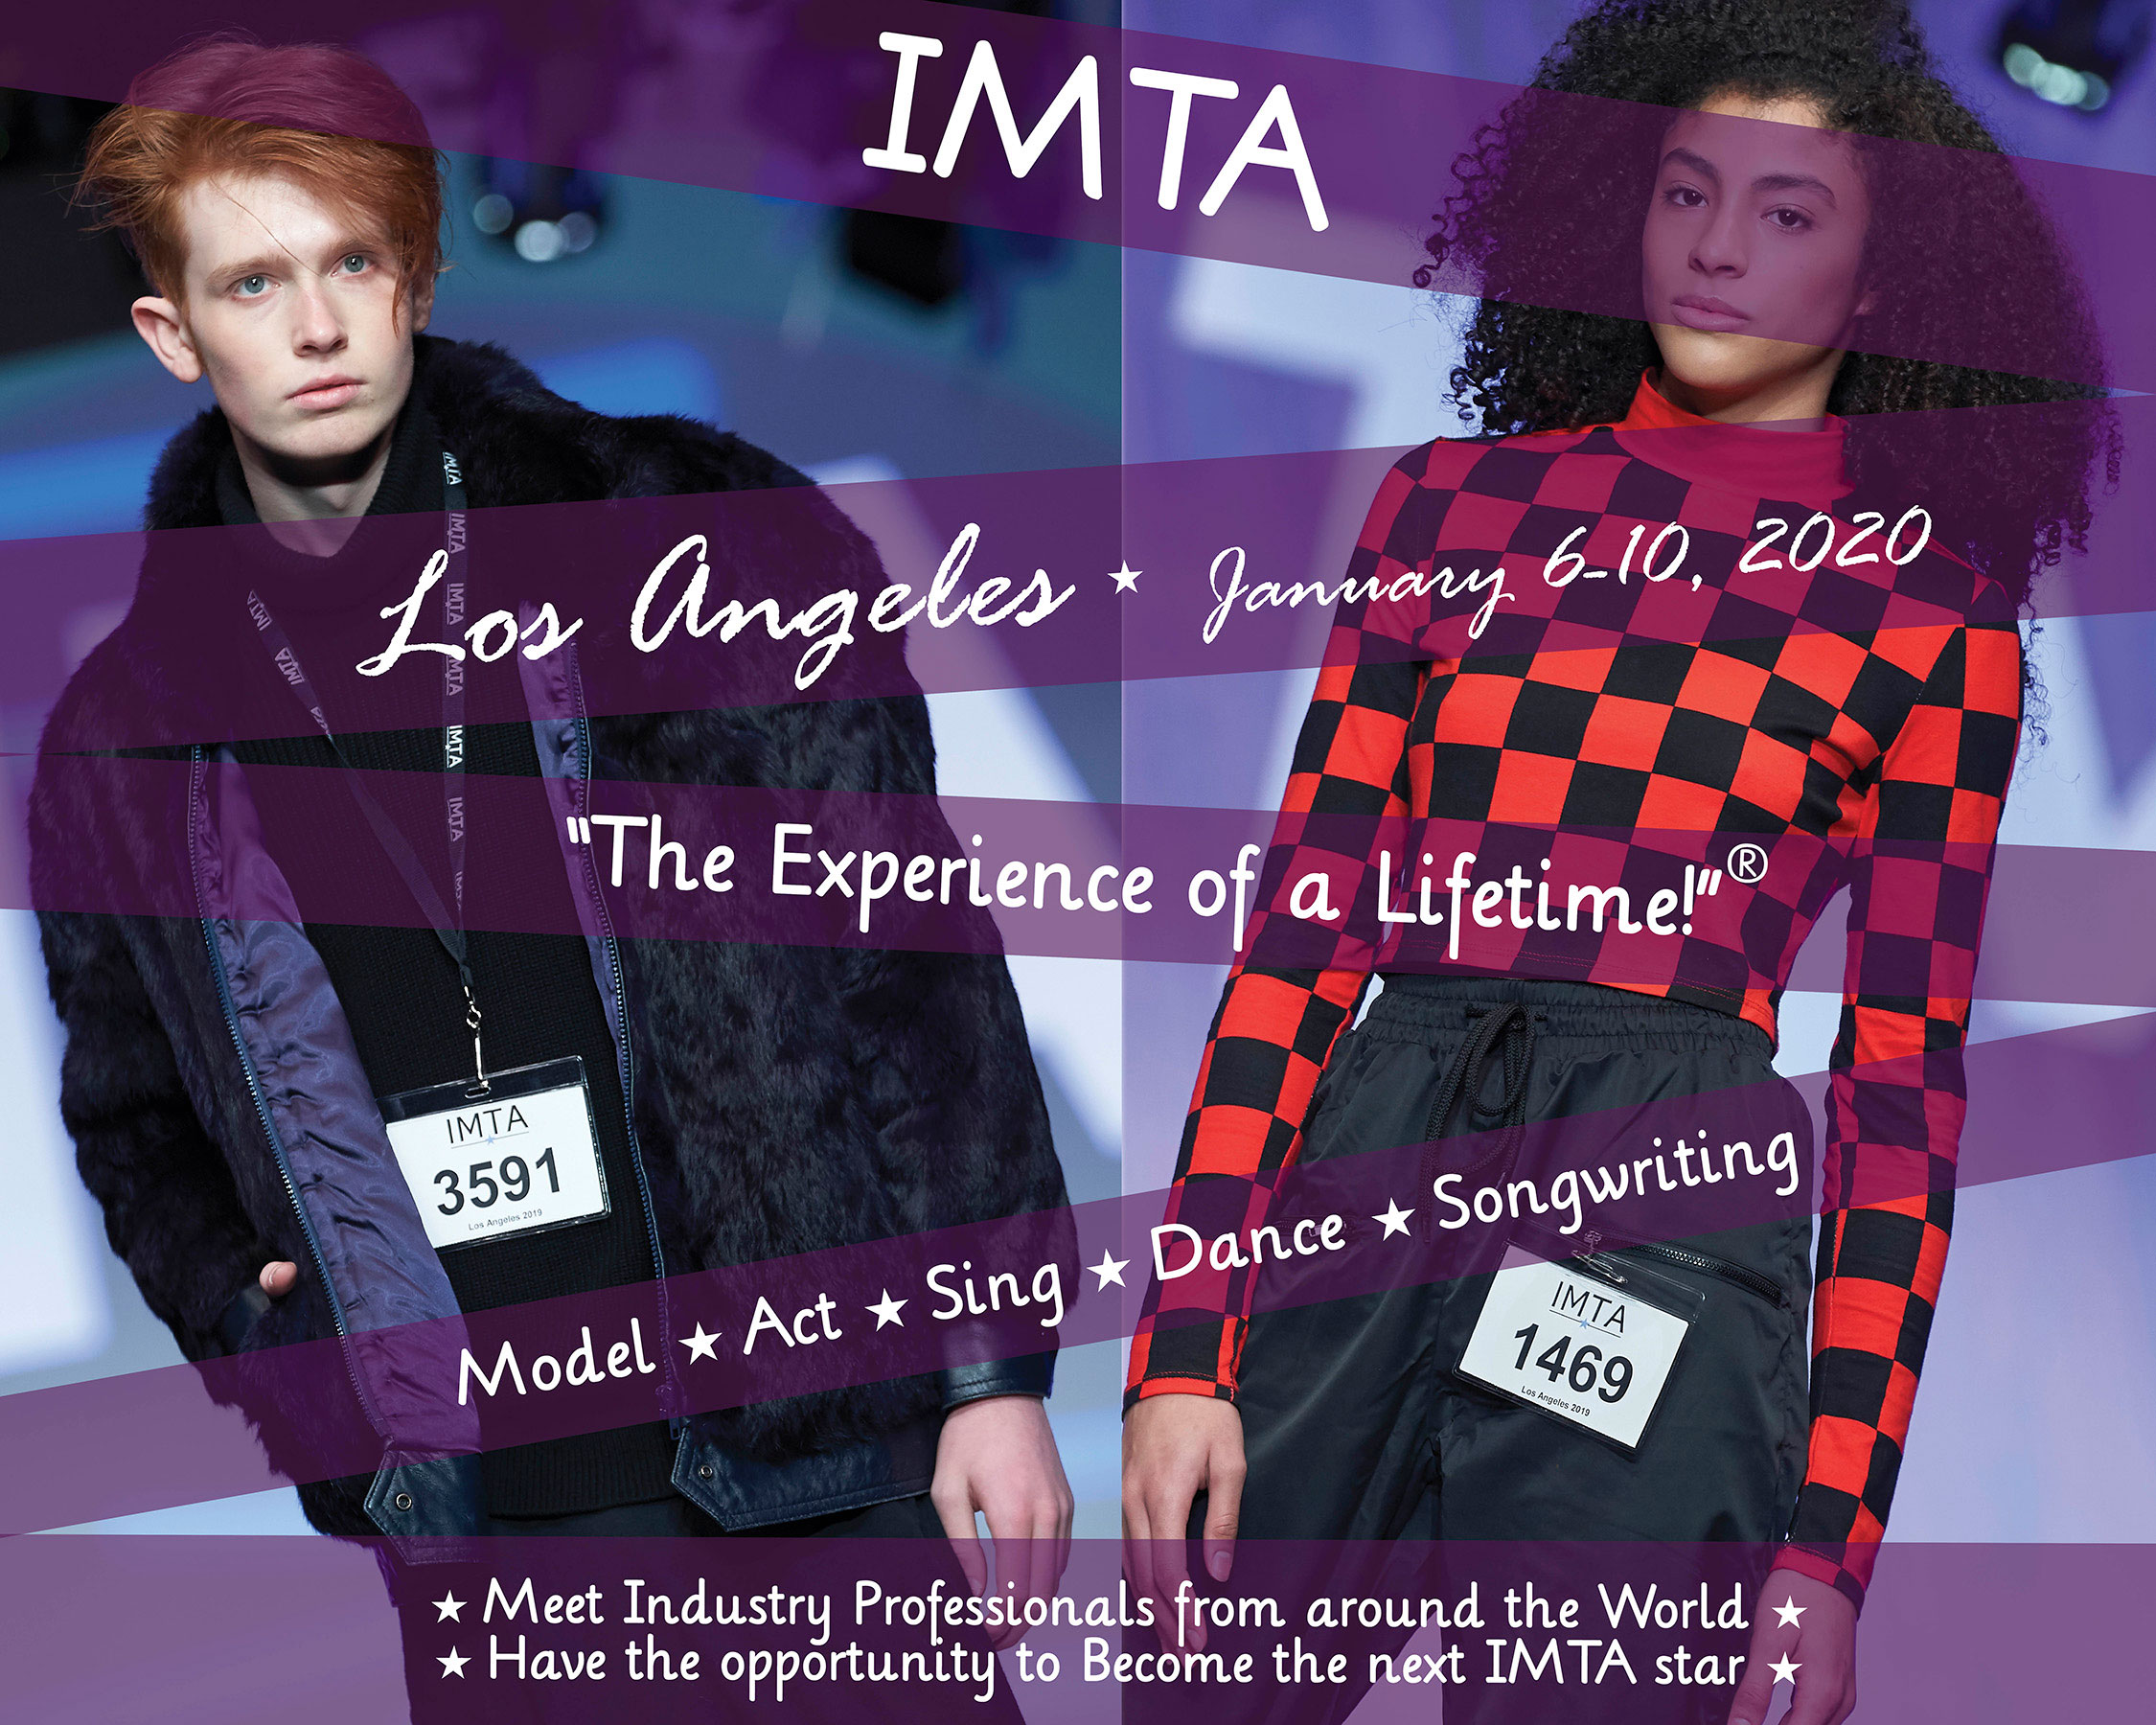 IMTA: Local Model and Talent Seaches for the International Modeling